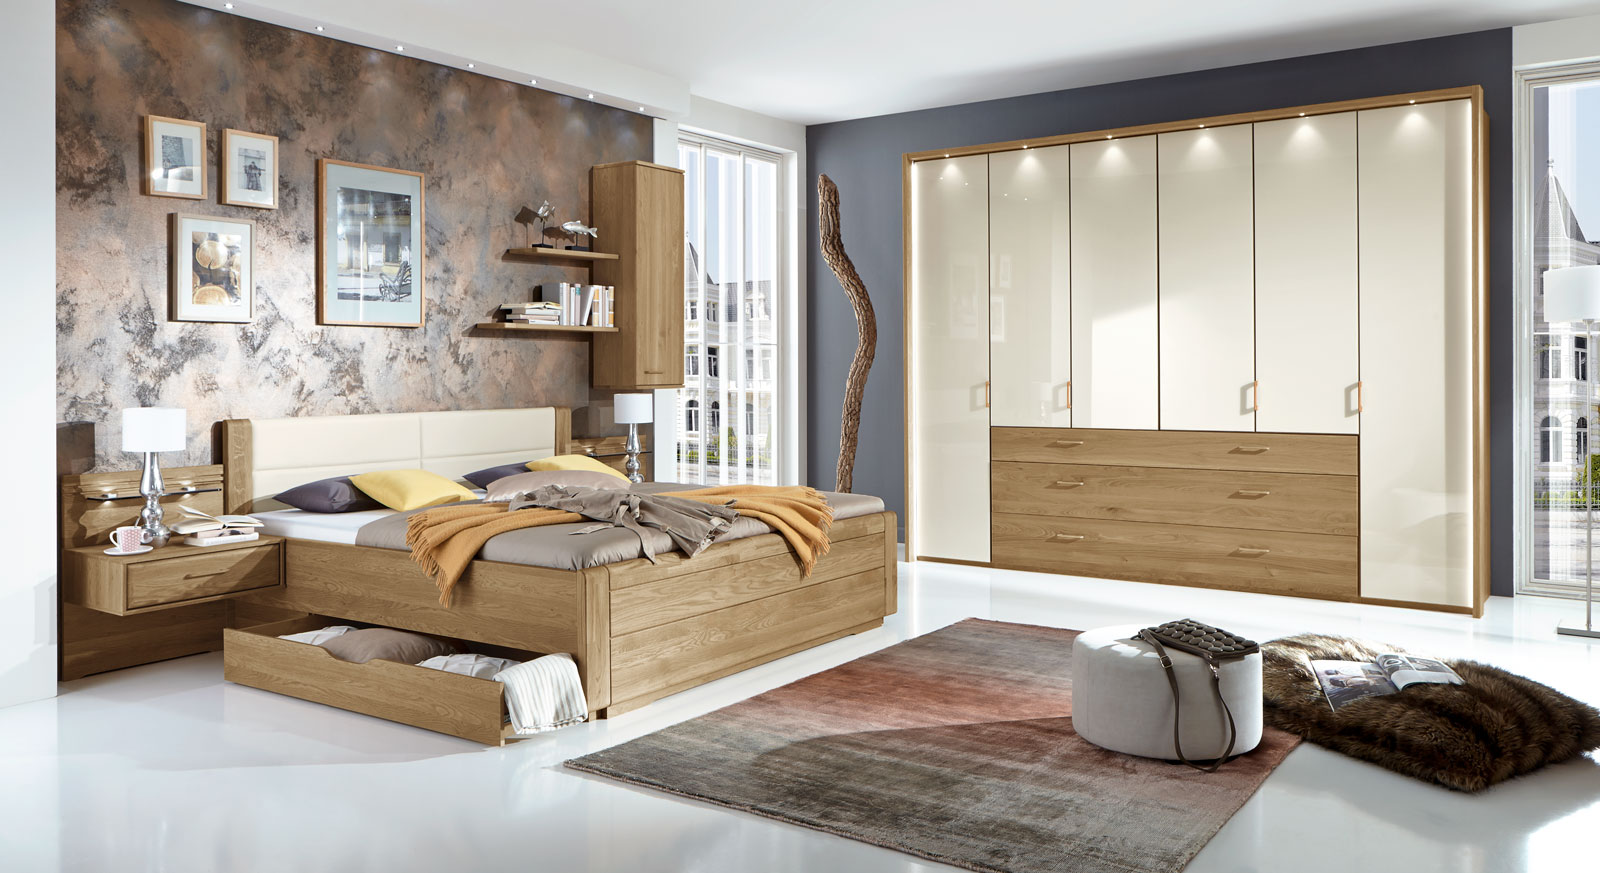 teilmassives schlafzimmer komplett mit schubkastenbett. Black Bedroom Furniture Sets. Home Design Ideas